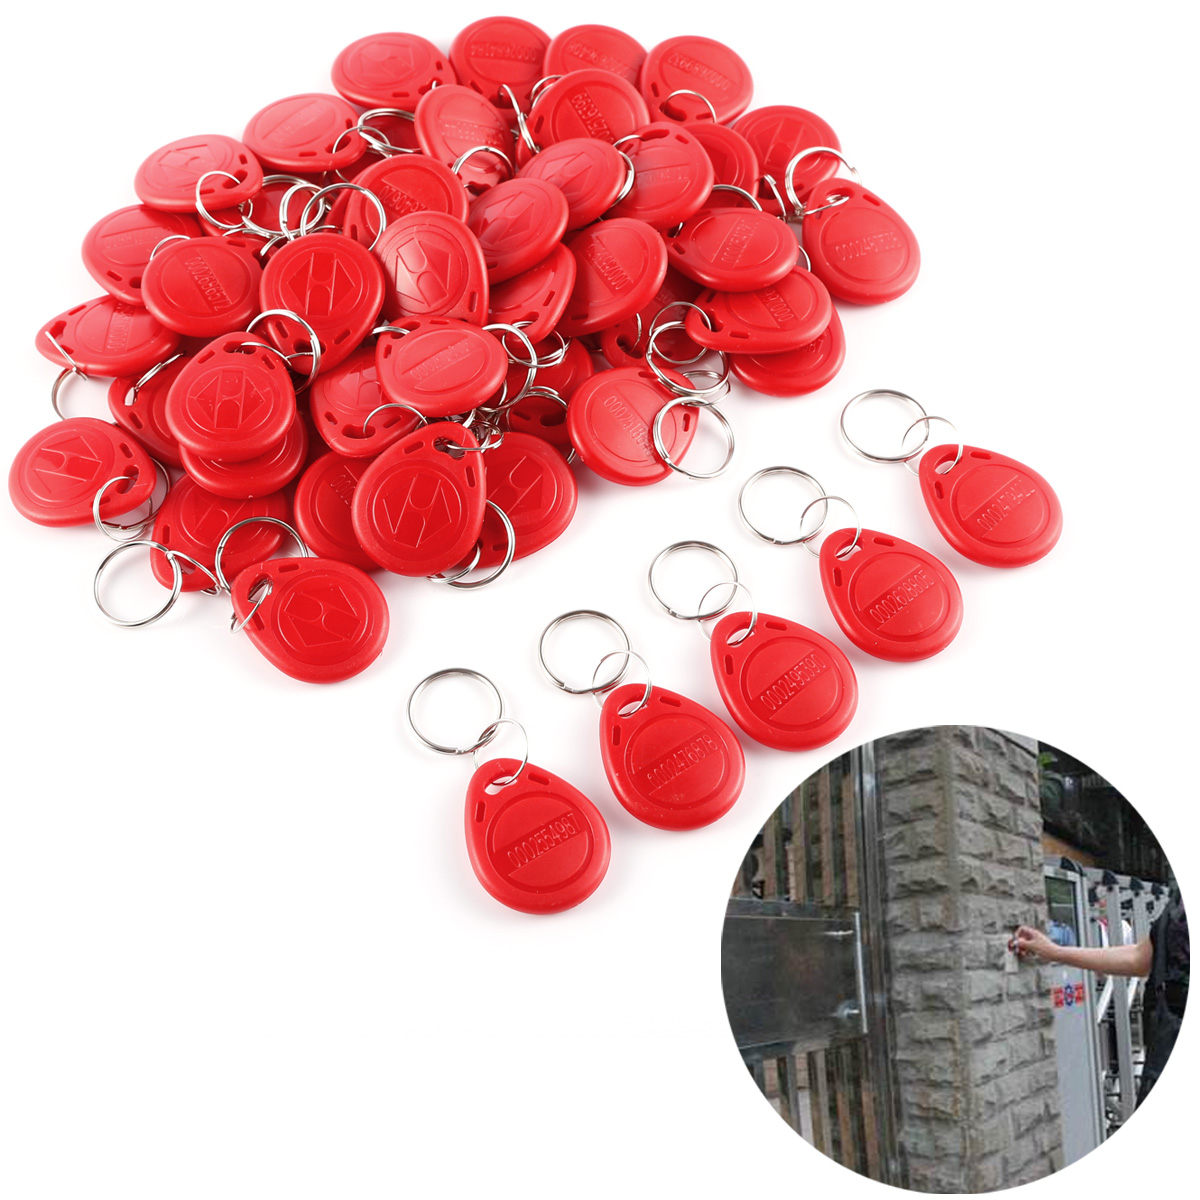 Details about 50x 125KHz Duplicator Copy RFID Tag Access Card Sticker Key  Fob Token Ring Blue